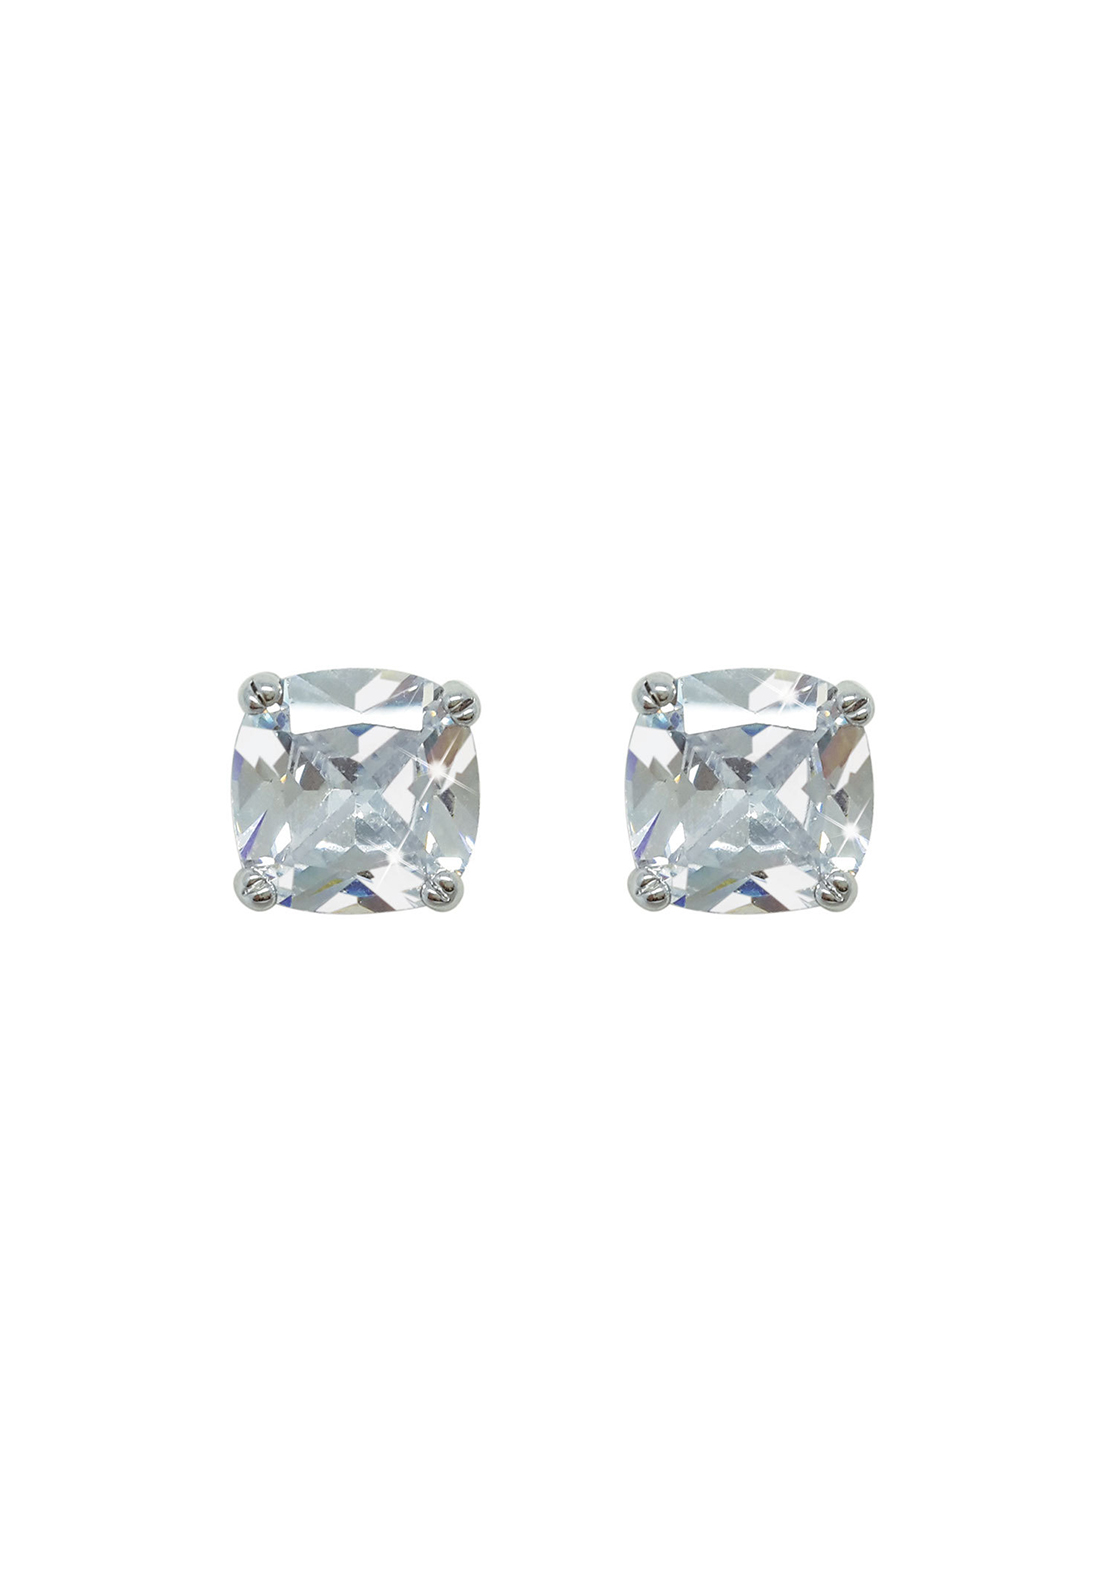 Tipperary Crystal Square 7mm Diamante Stud Earrings, Silver